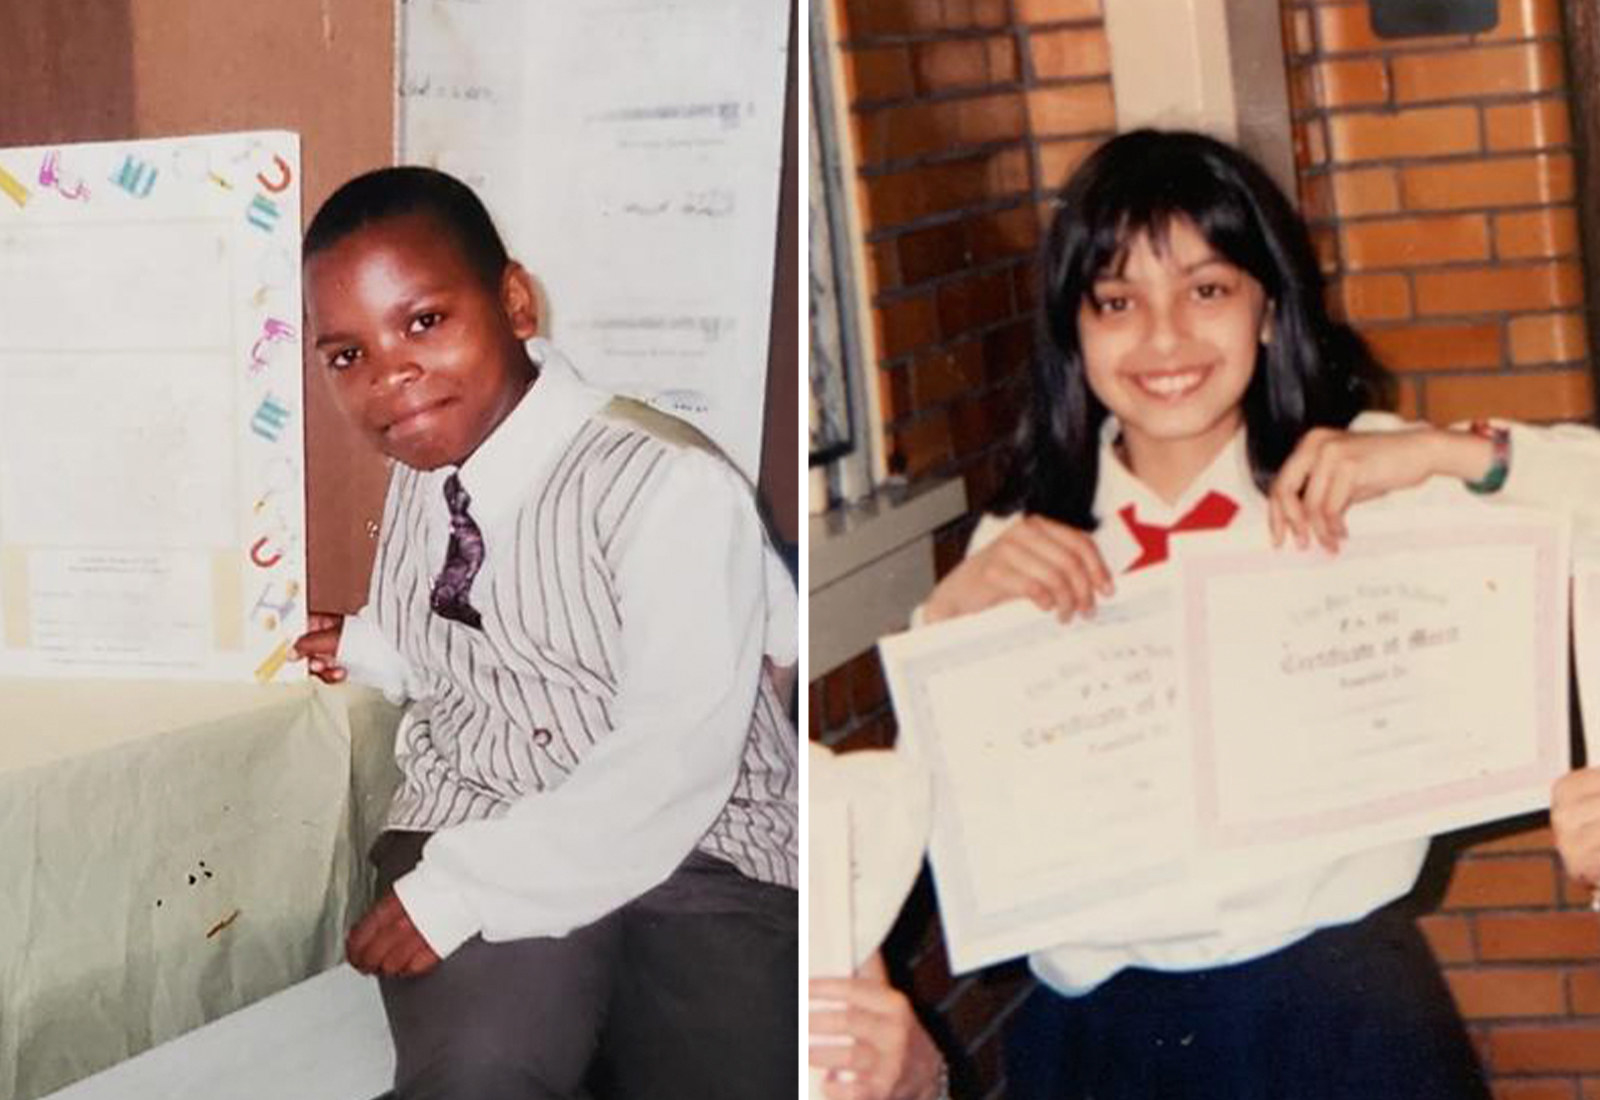 Right: Mattis smiles as a child; left: a young Rahman holds up two certificates